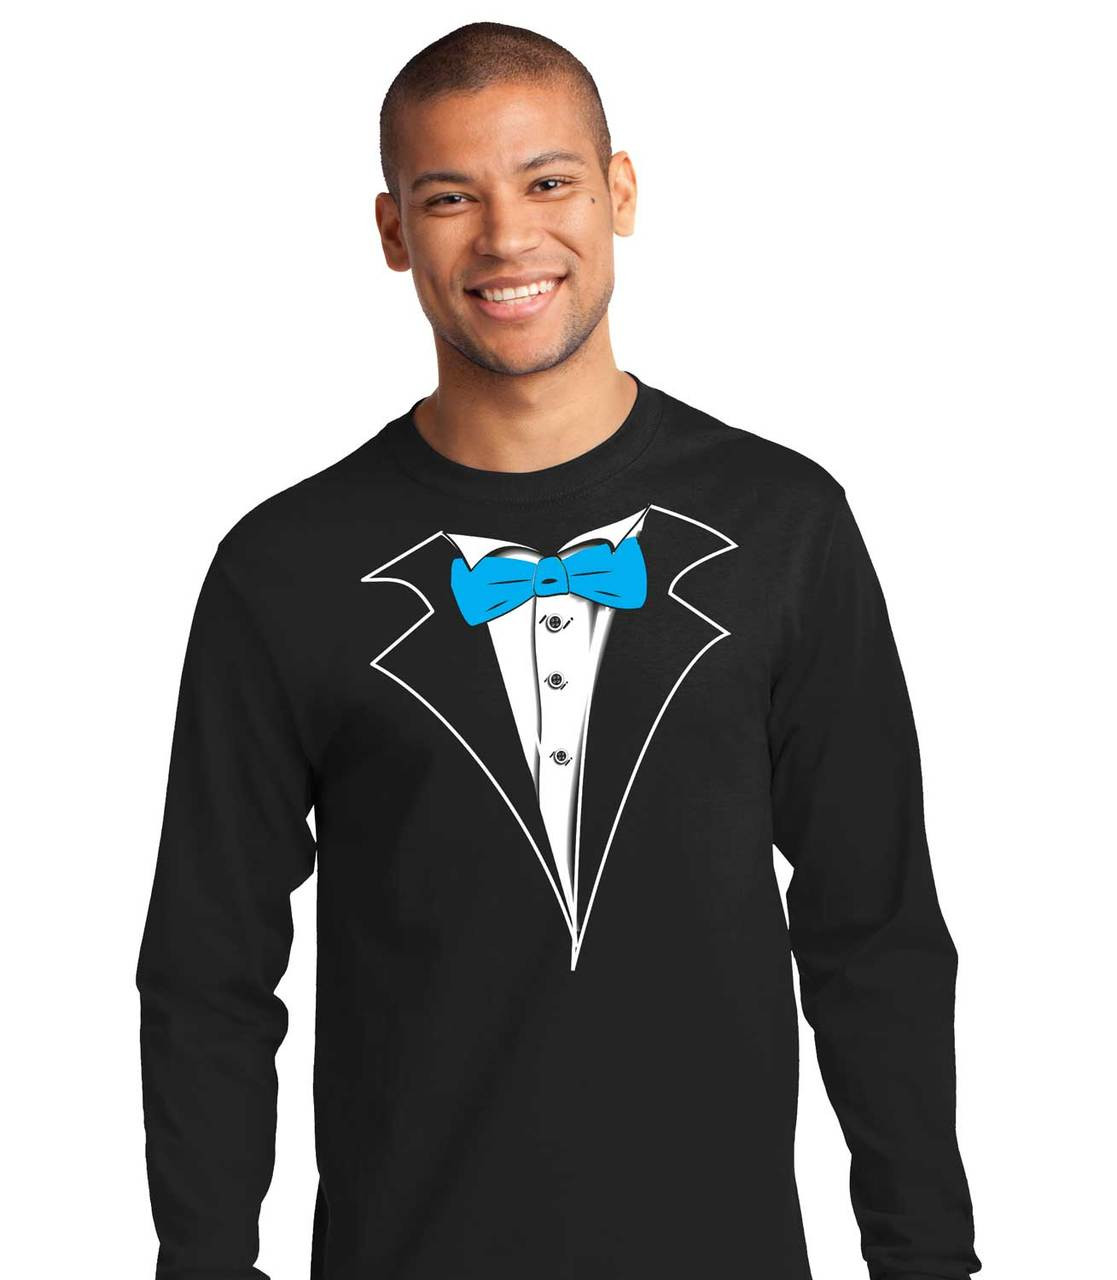 99996230f6e3 Tuxedo T-shirt Long Sleeve in Black with red tie,no carnation | Shop Men's  Black Tuxedo Tees